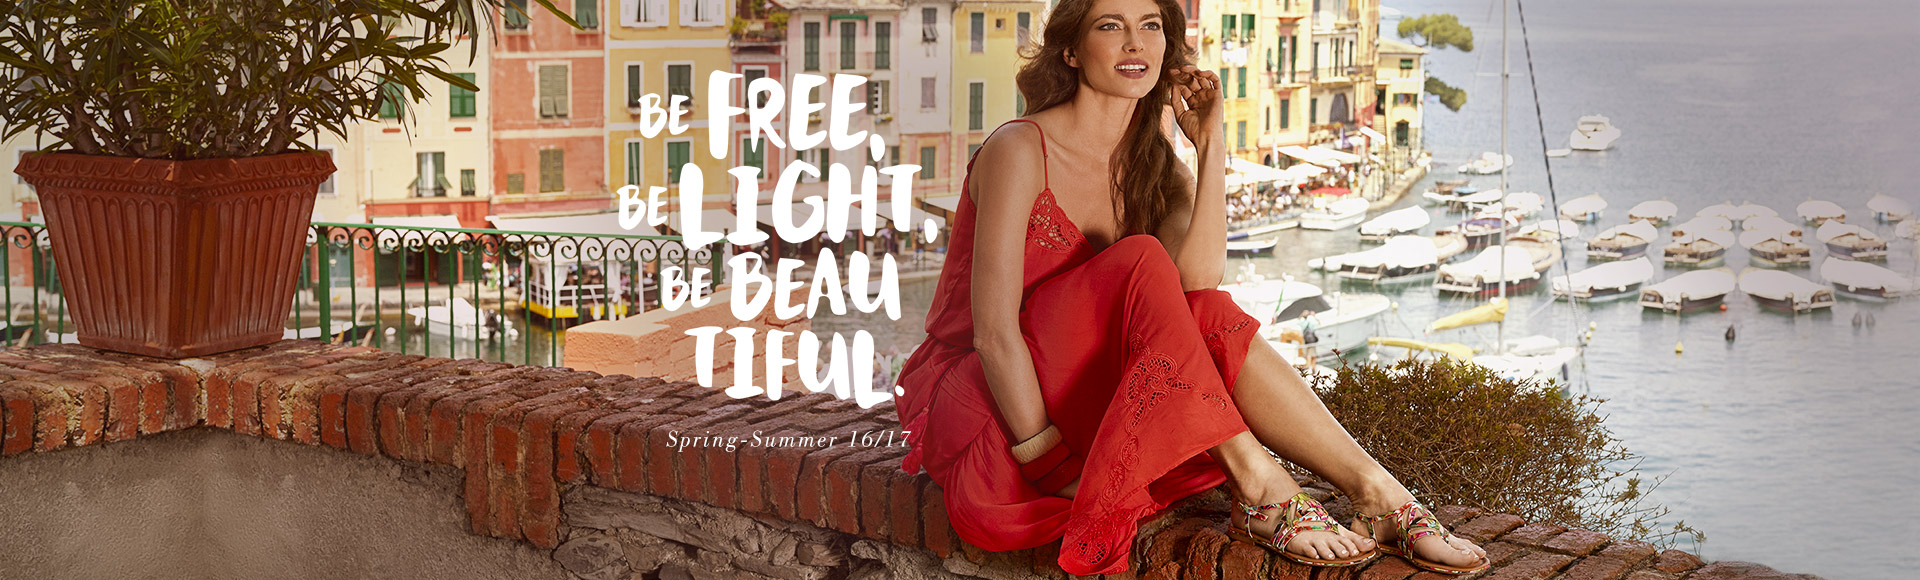 Free, light, beautiful